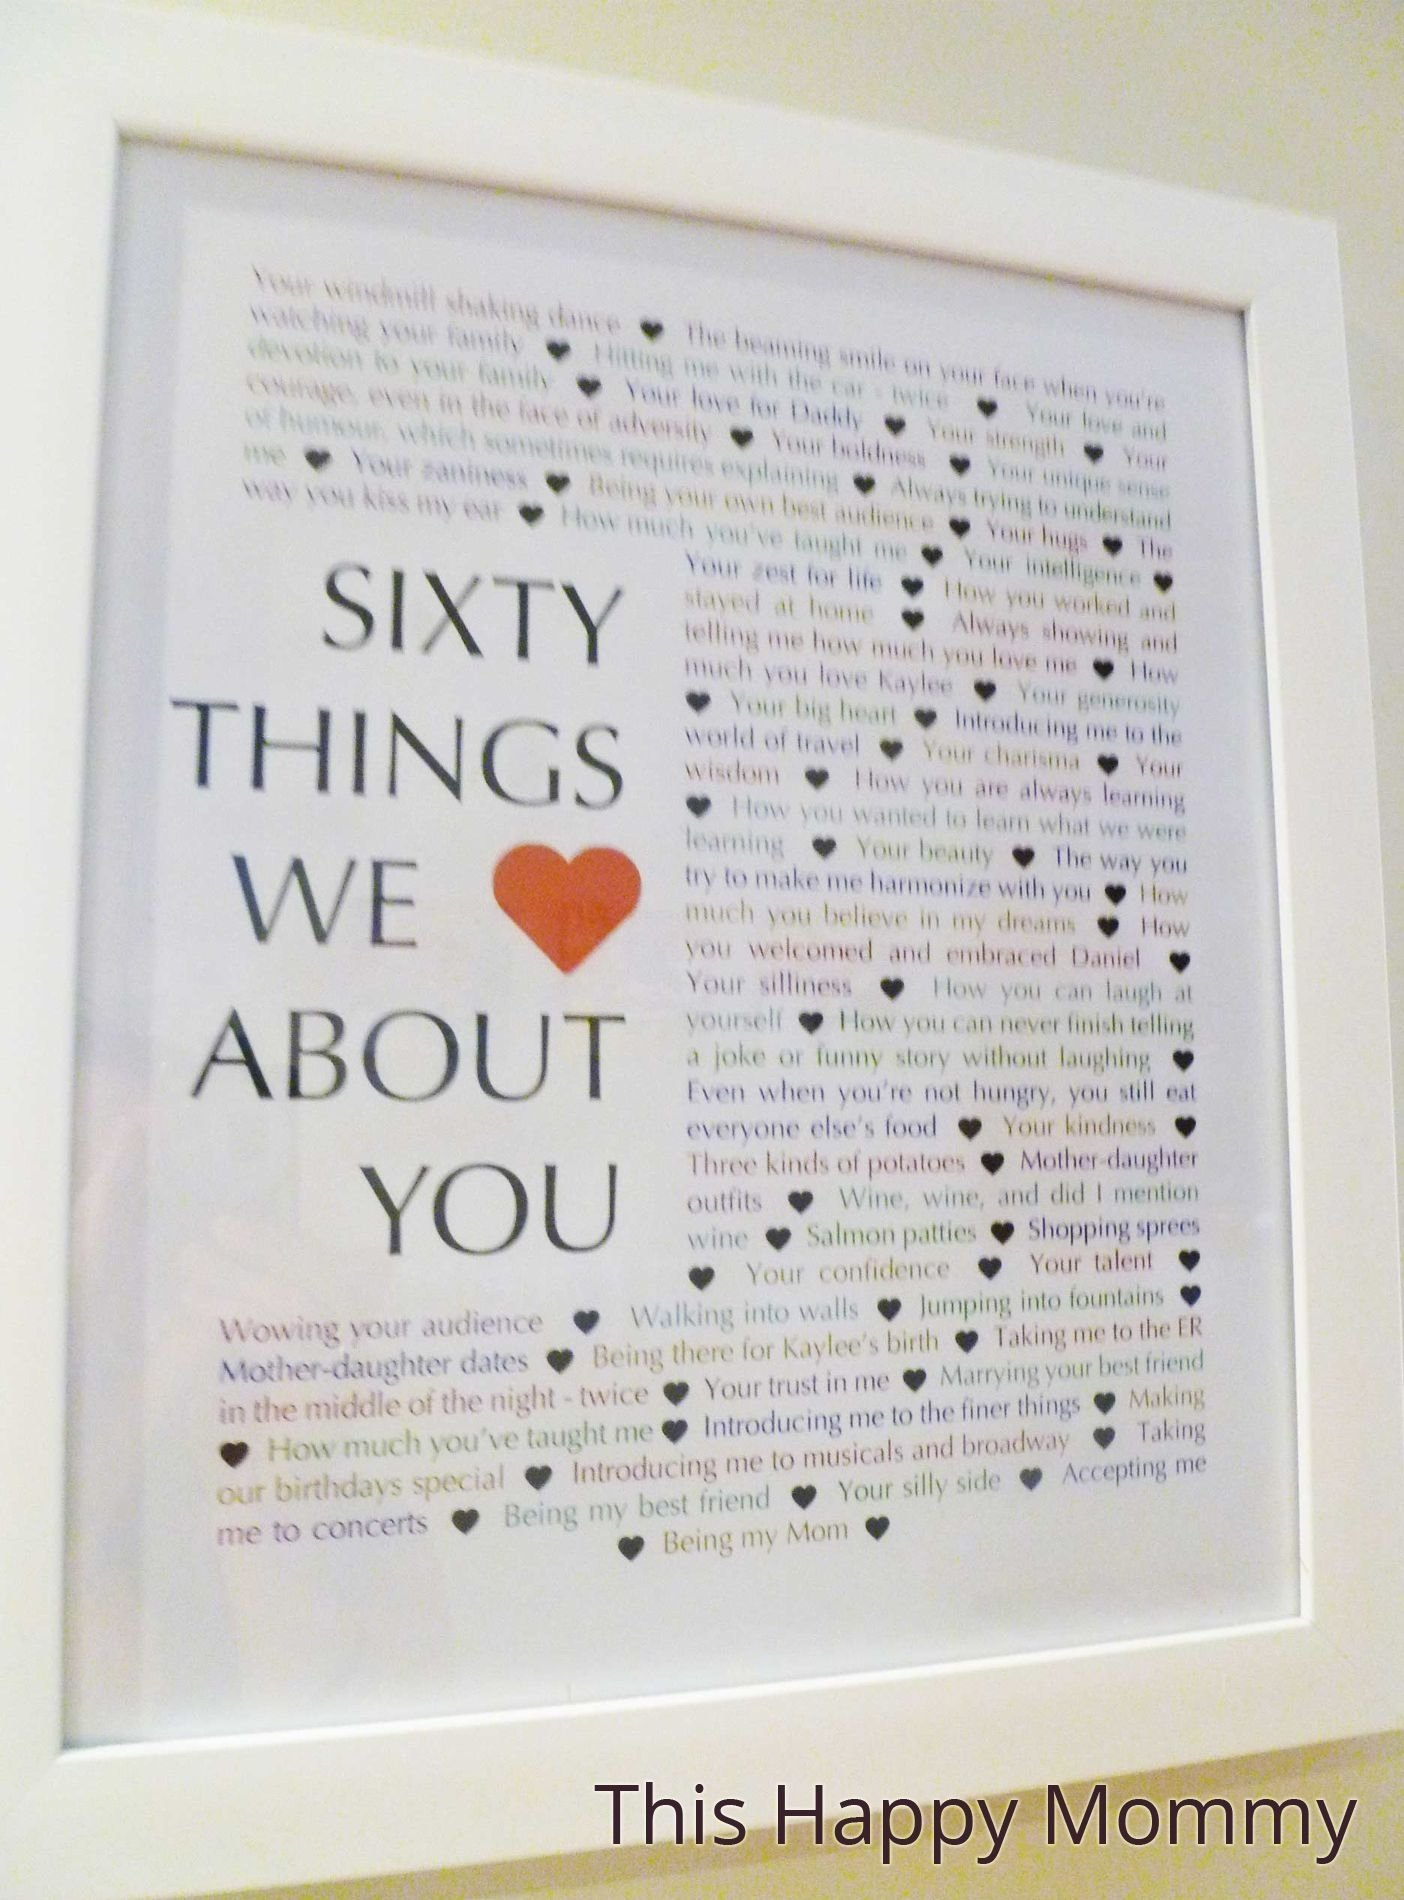 10 Spectacular 65Th Birthday Gift Ideas For Dad 60 things we love about you milestone birthdays homemade and 6 2021